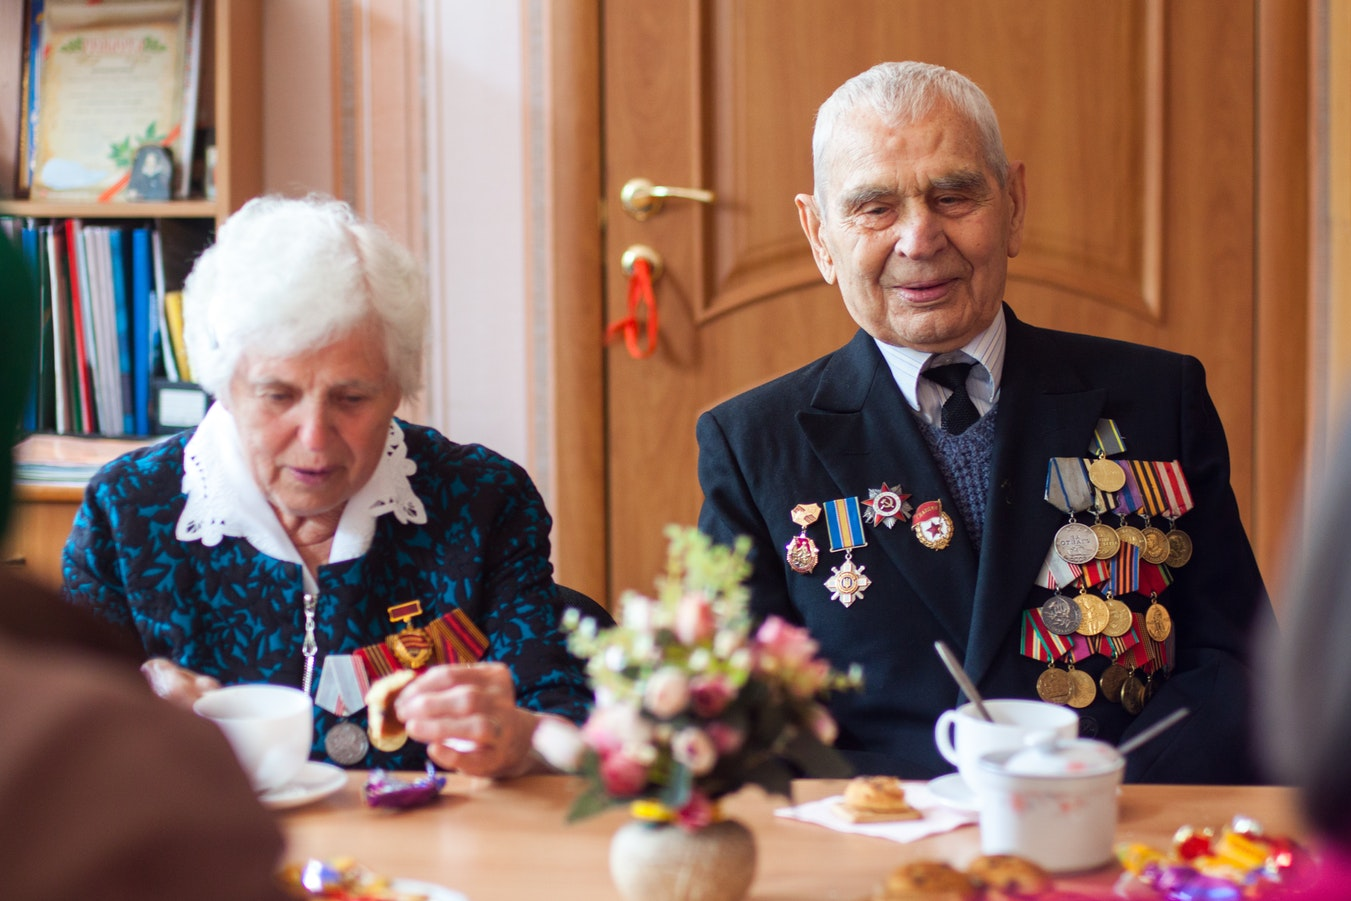 A senior veteran and his wife enjoying coffee and cookies at their senior living facility.